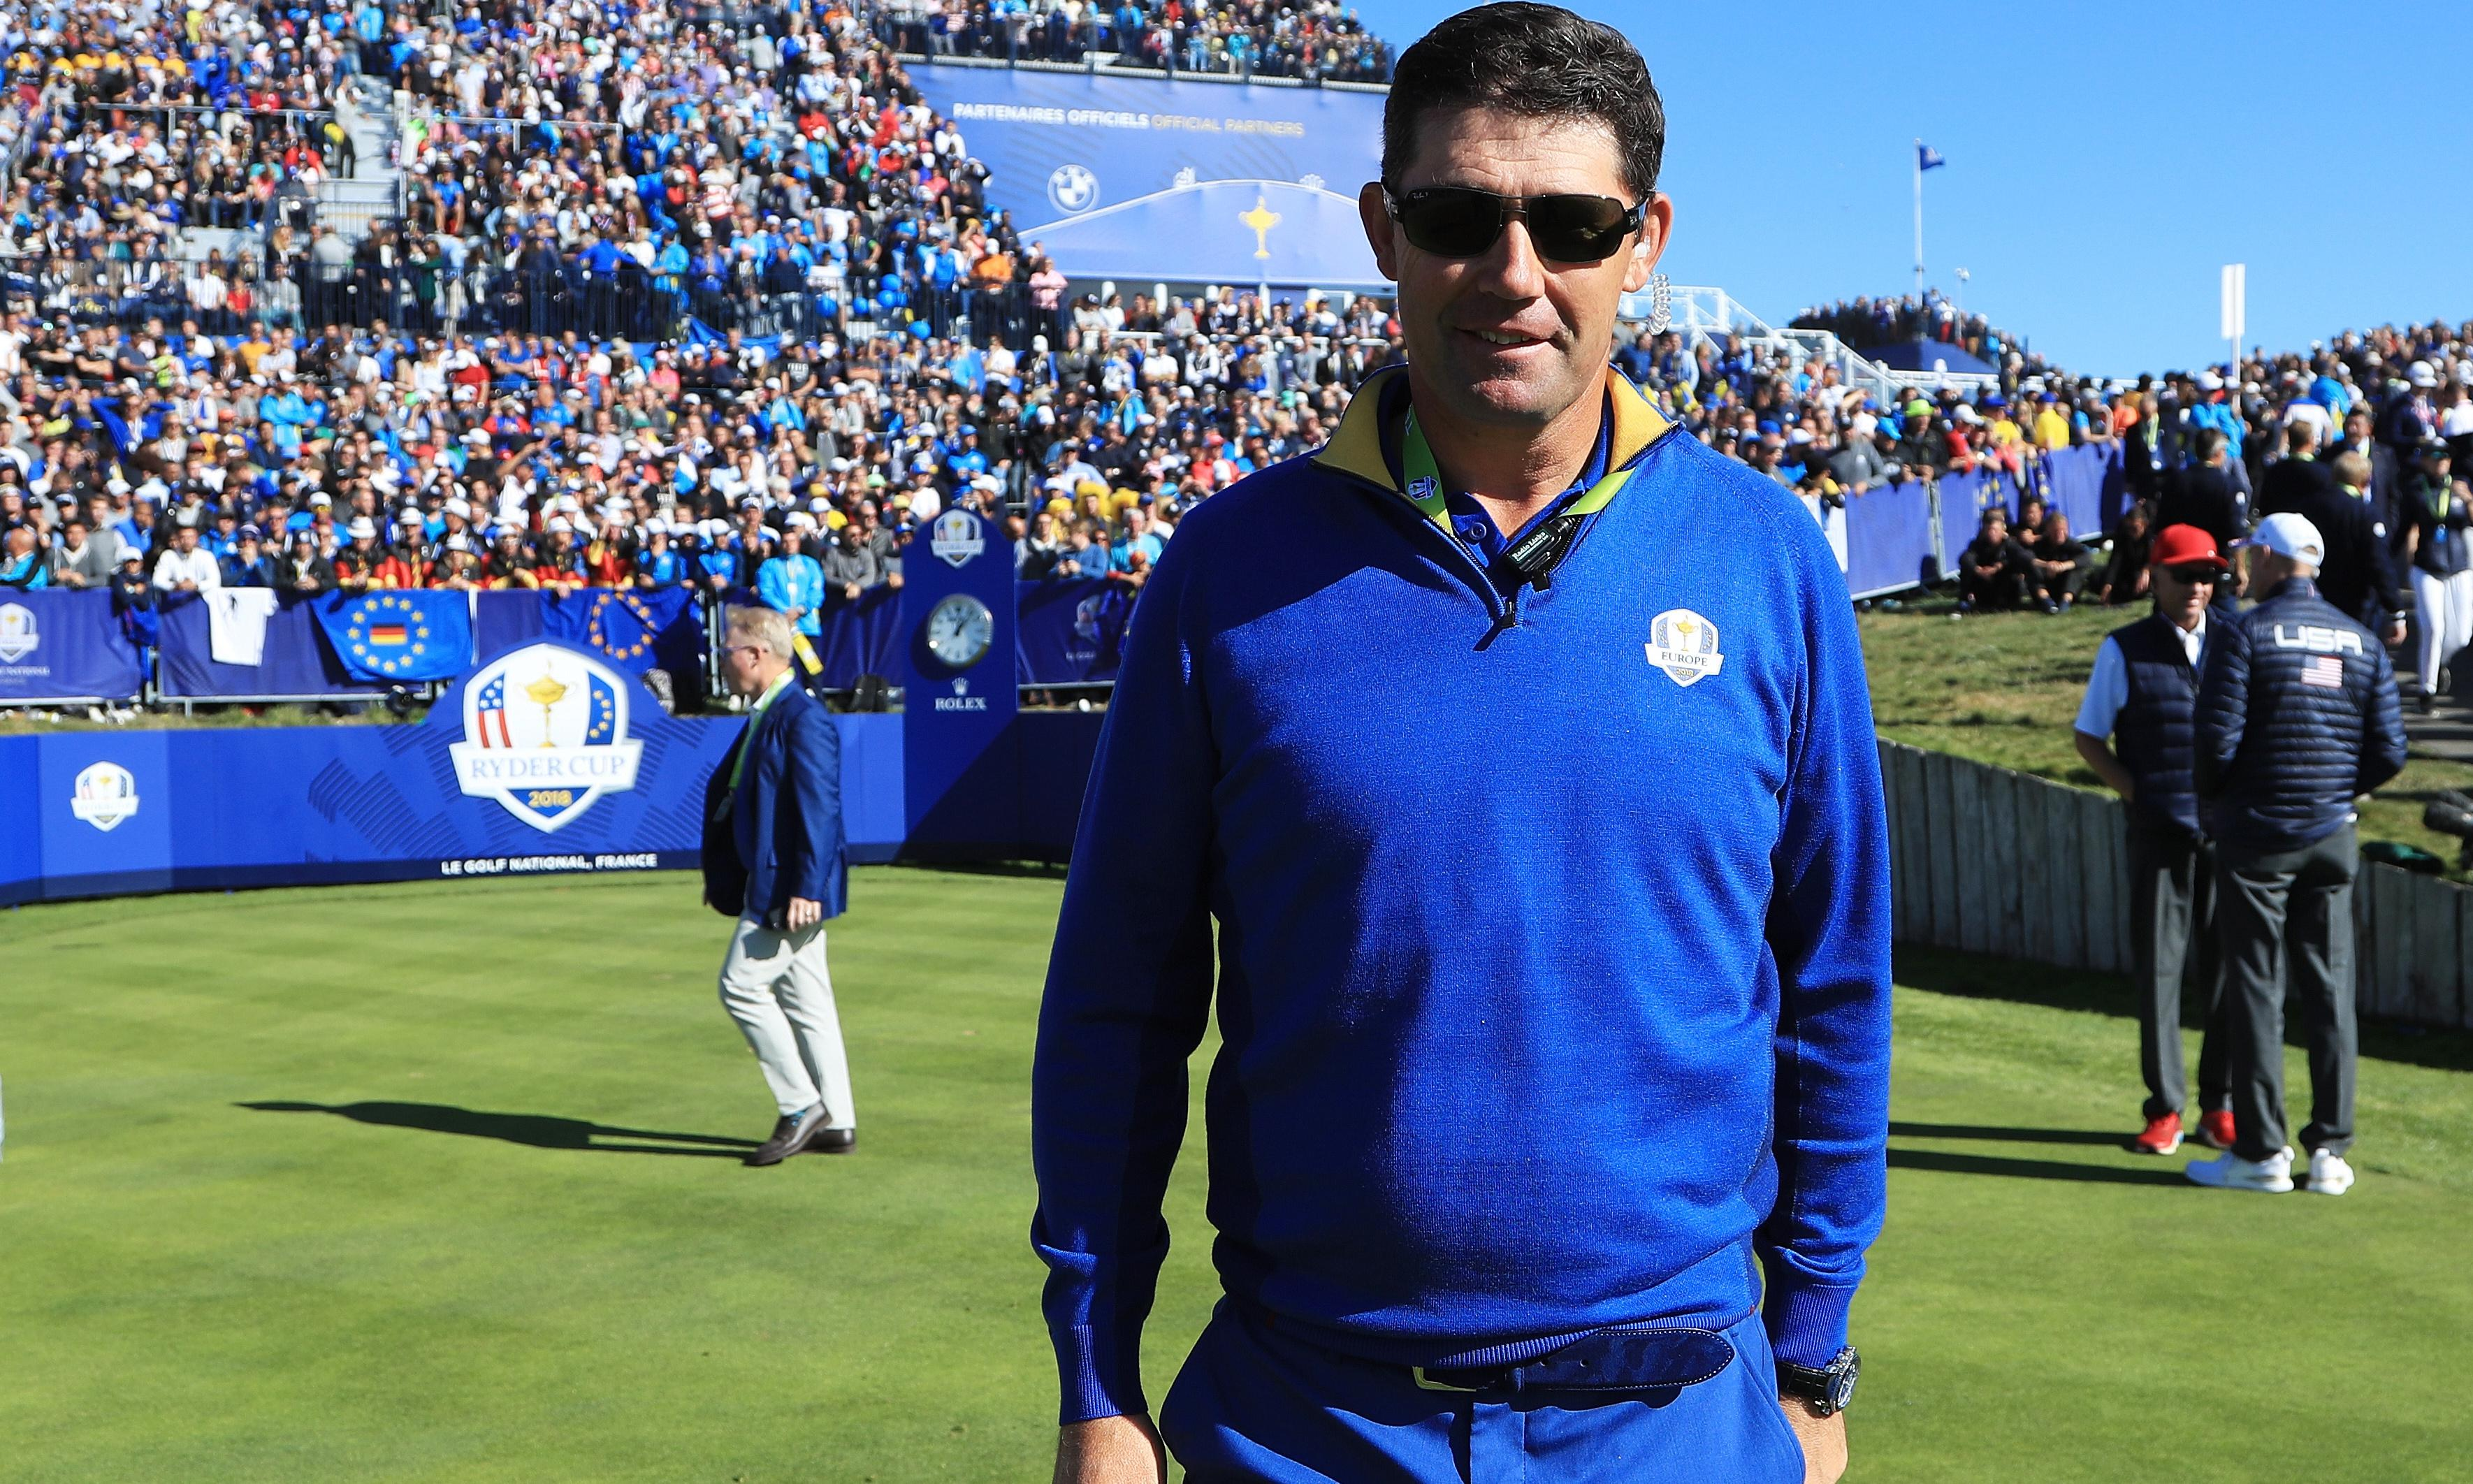 Padraig Harrington next in line to be Europe's Ryder Cup captain